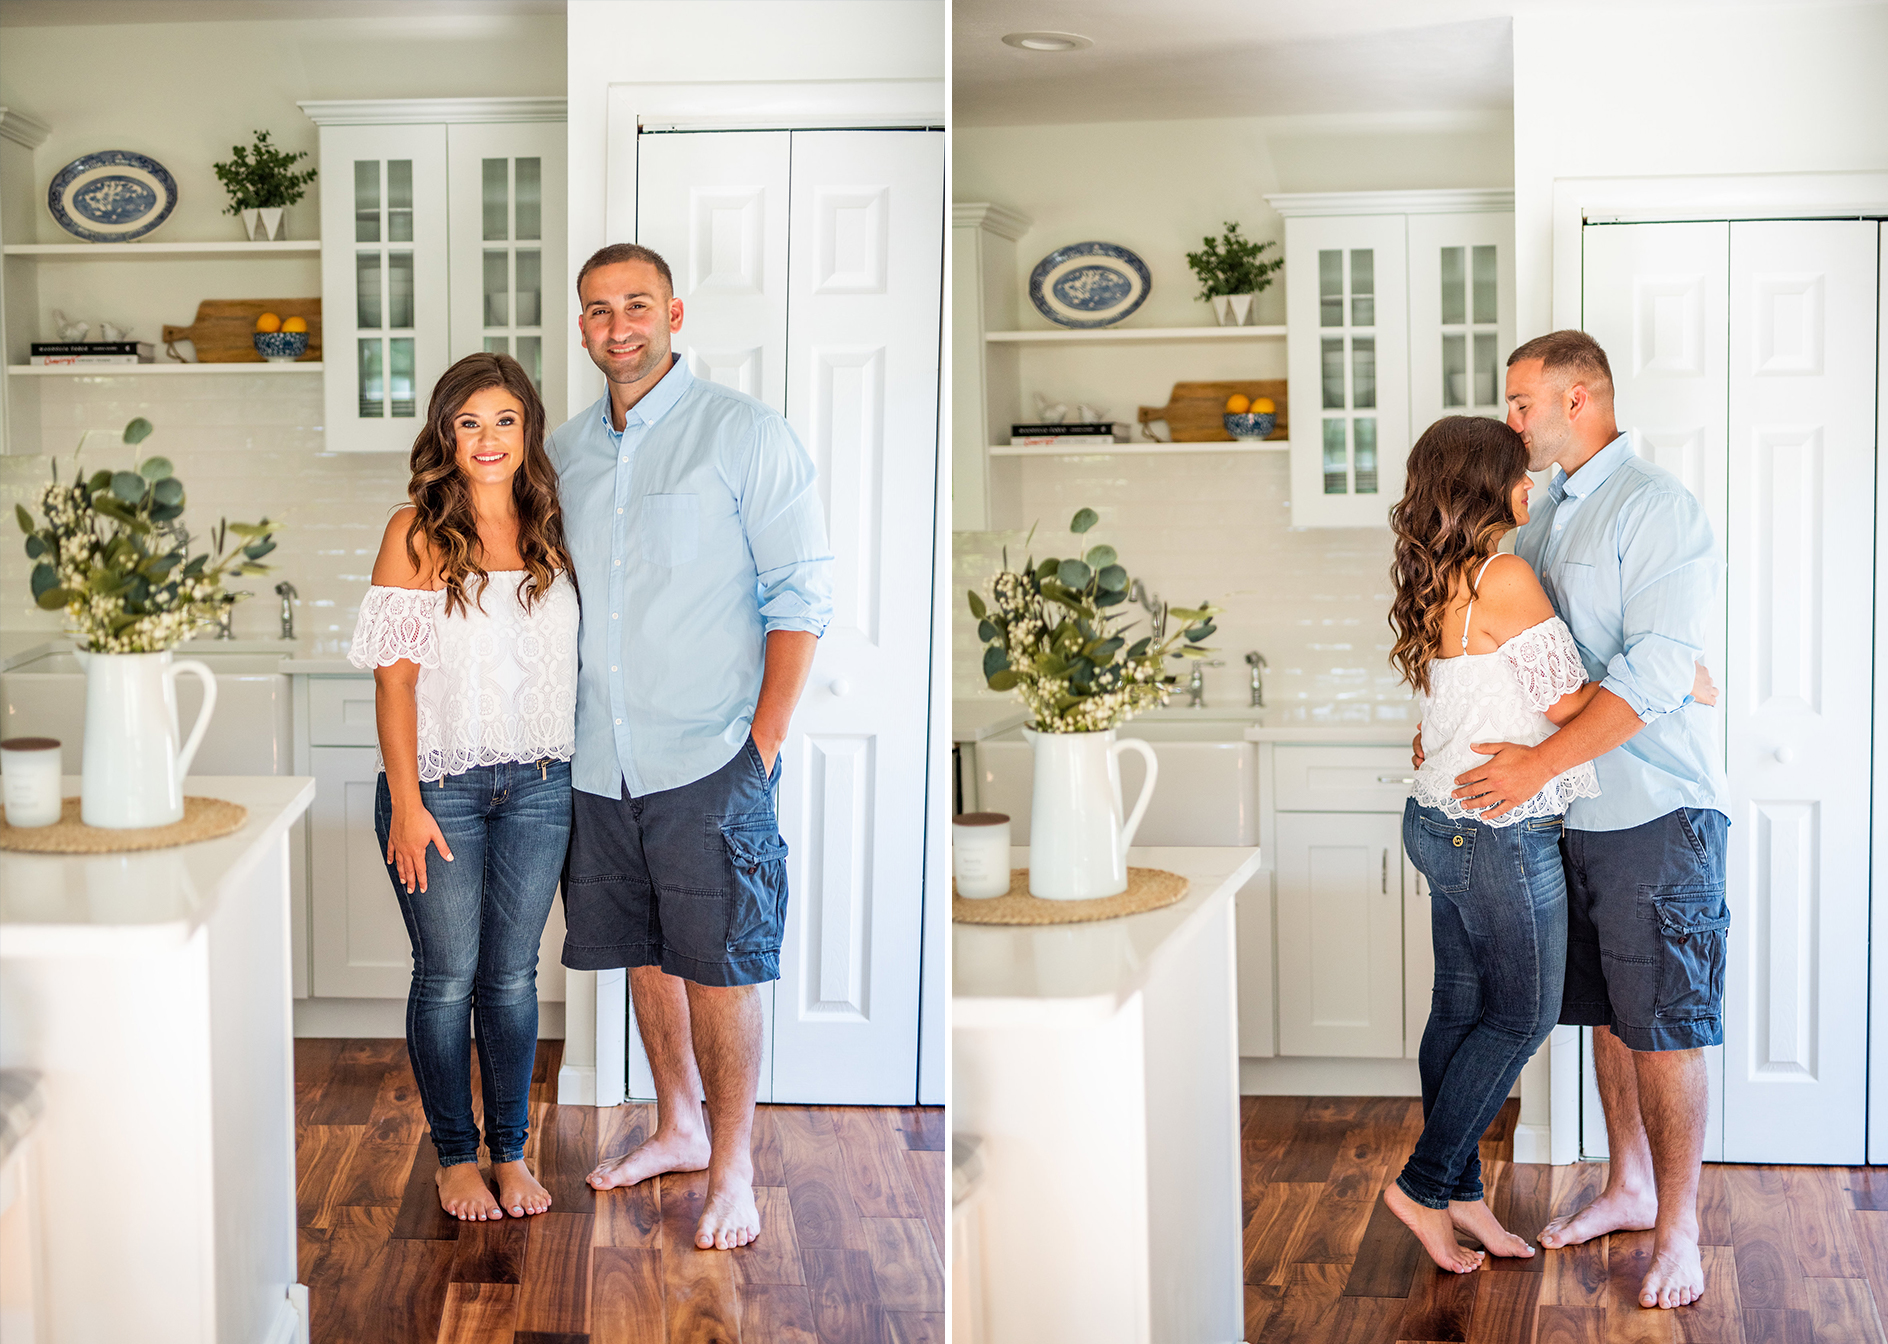 Calverton Engagement Shoot | Engagement Shoot at Home | Rustic Farrm Kitchen Engagement Shoot | North Forrk Wedding Photographer2